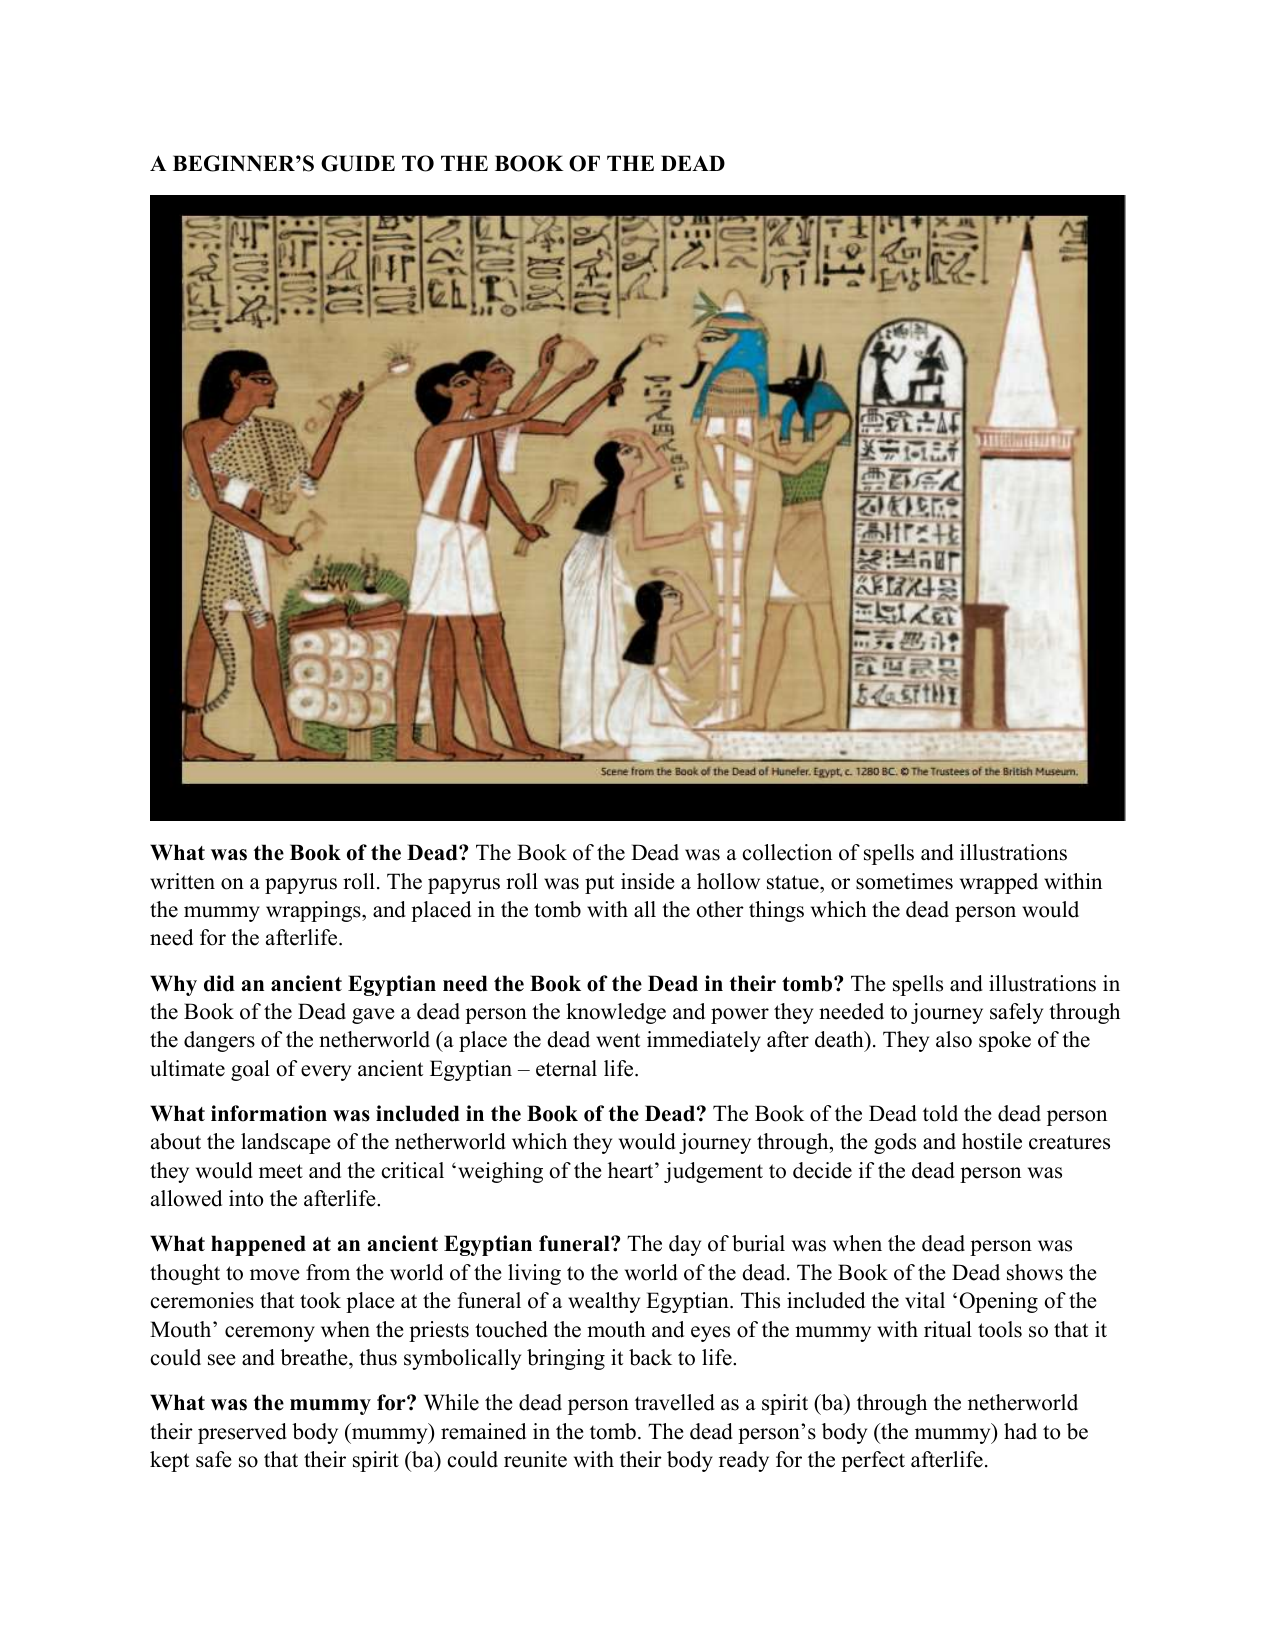 The Egyptian Book of the Dead as a guide in the last journey